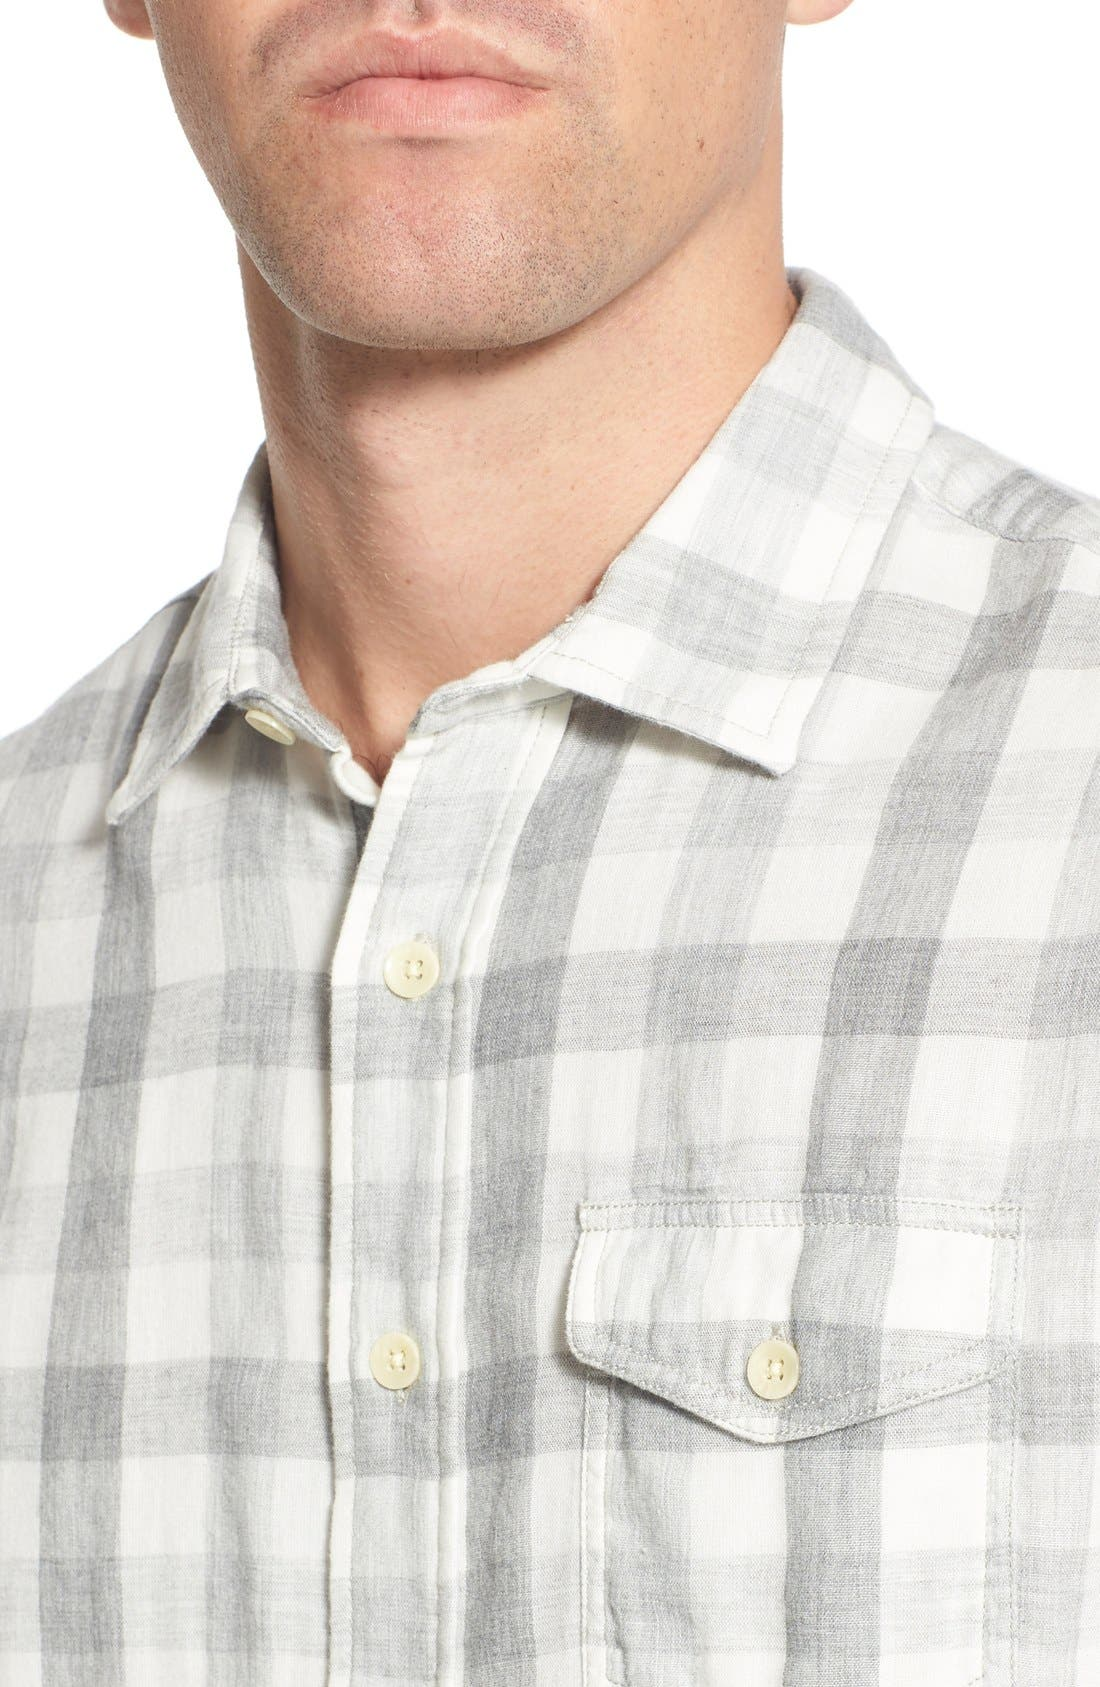 'Durham' Regular Fit Check Sport Shirt,                             Alternate thumbnail 2, color,                             Heather Grey Gingham